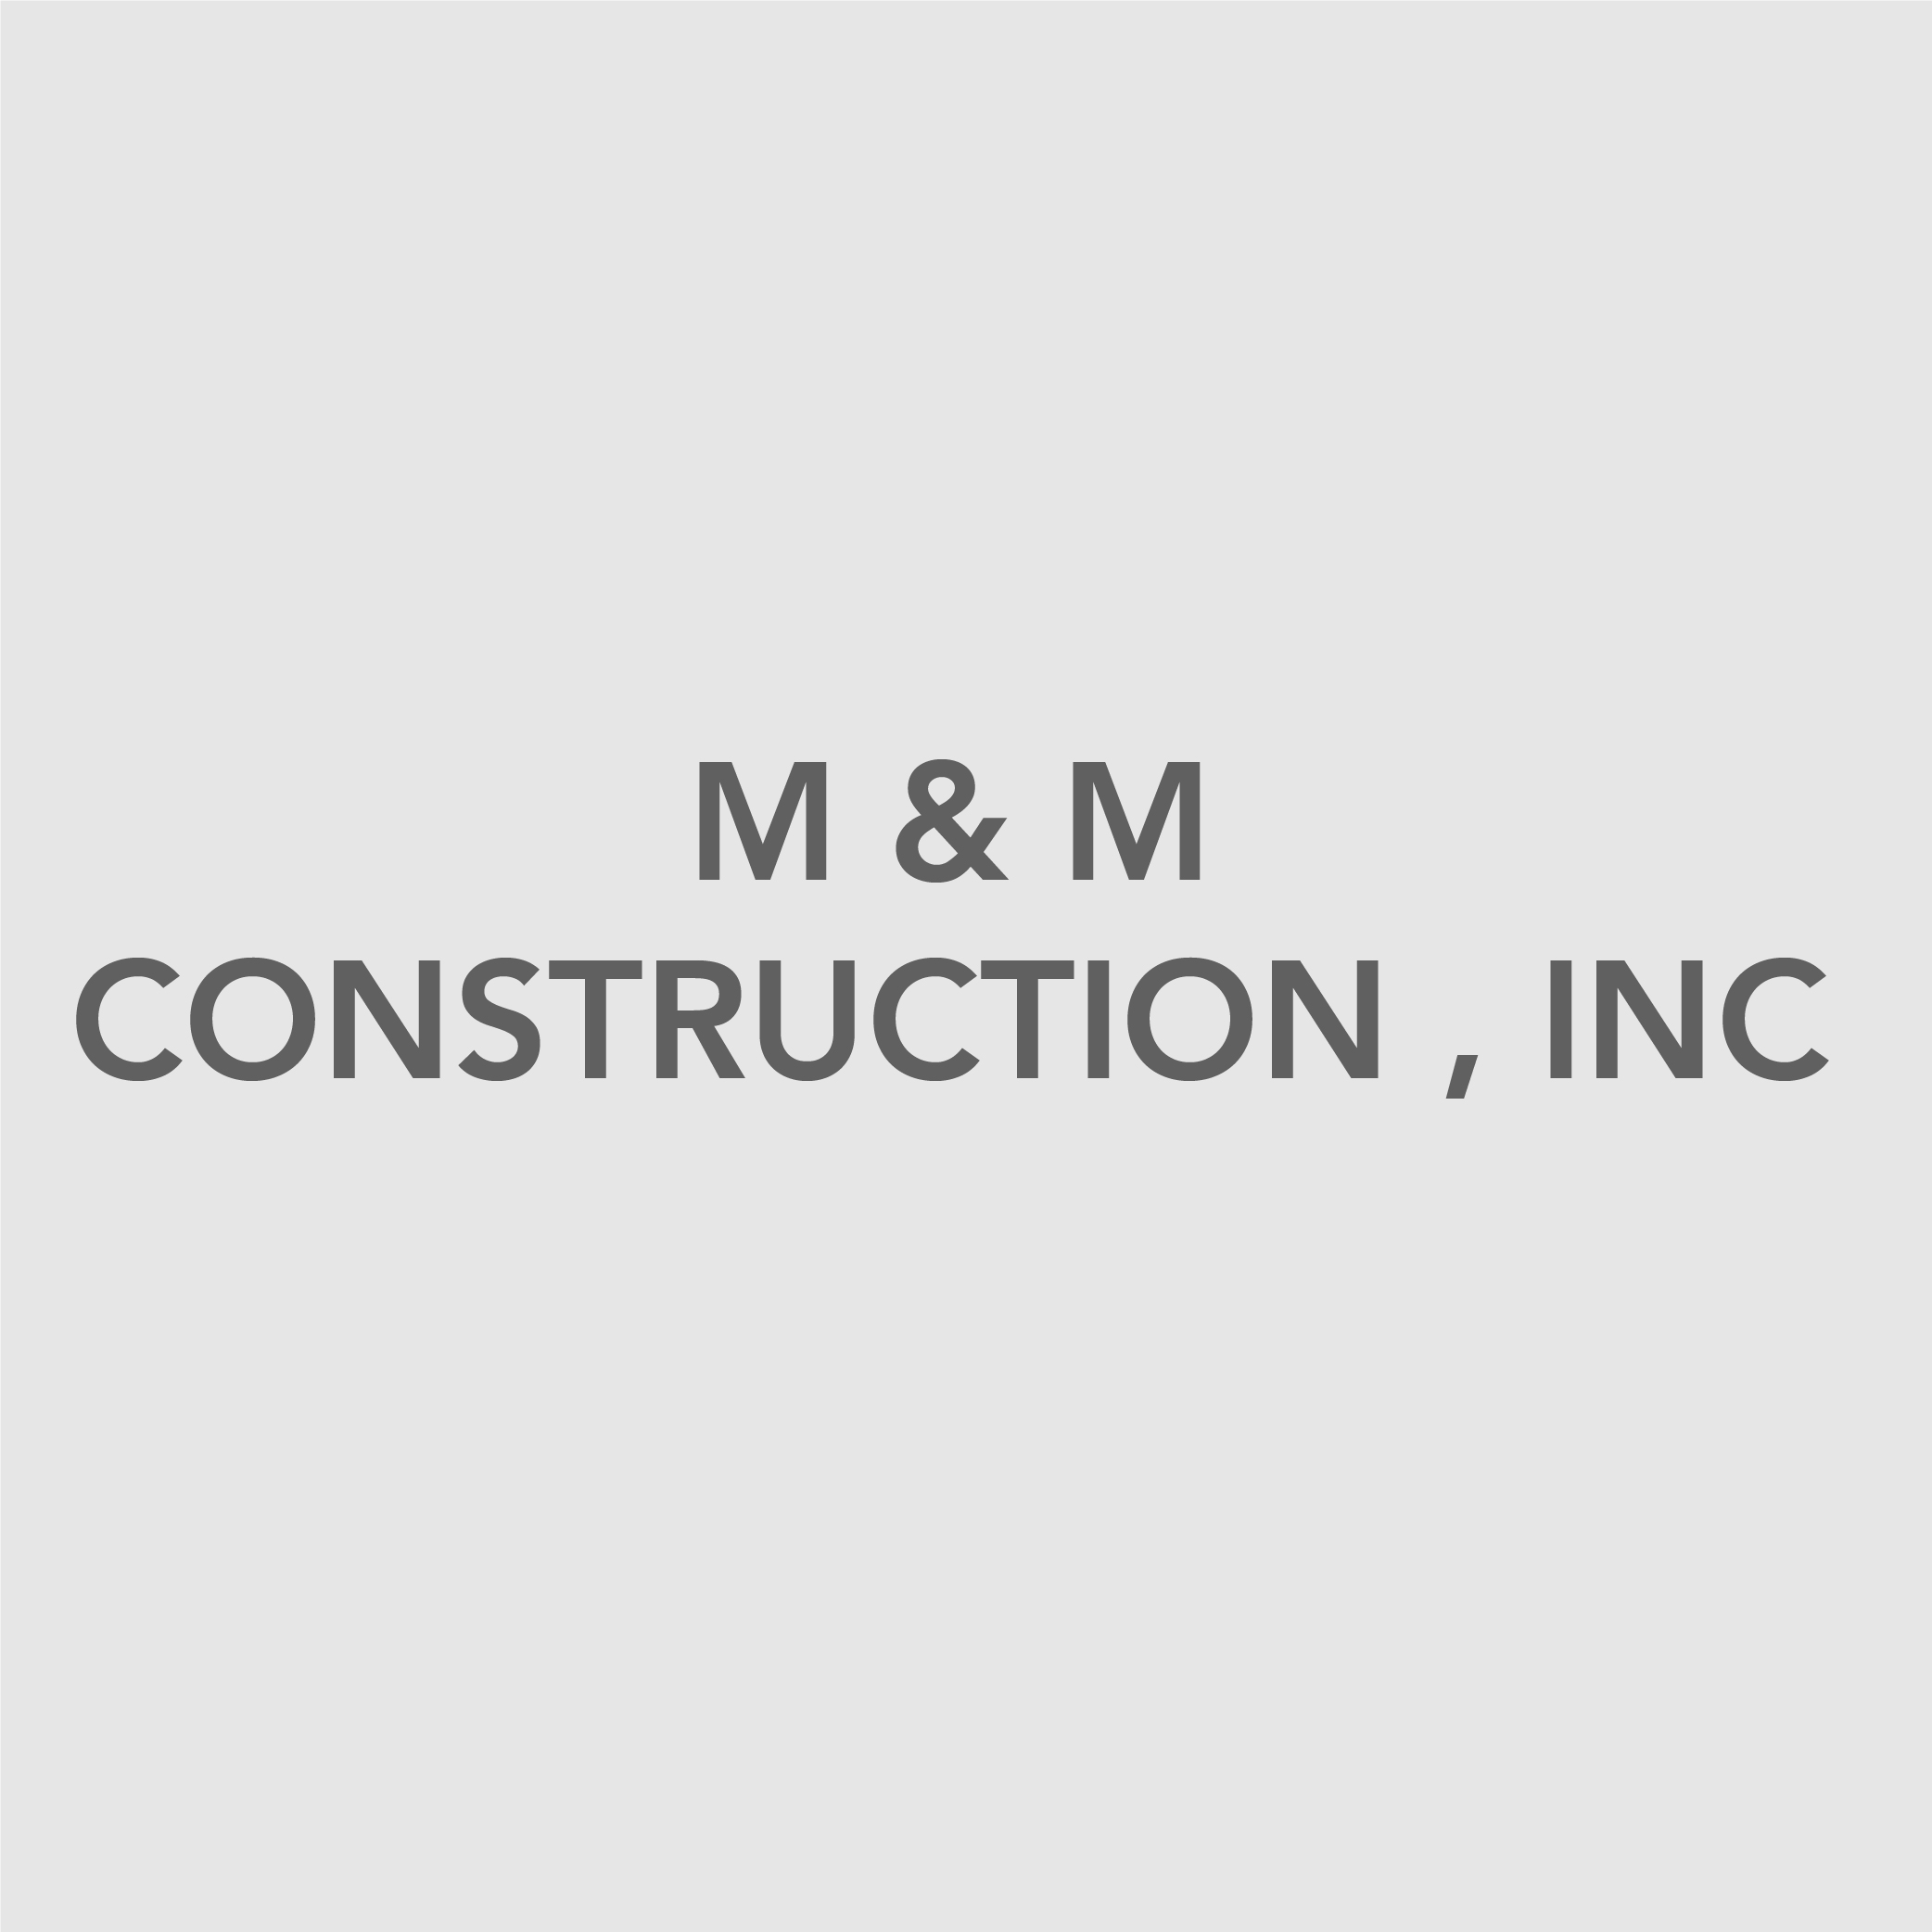 M&M Construction